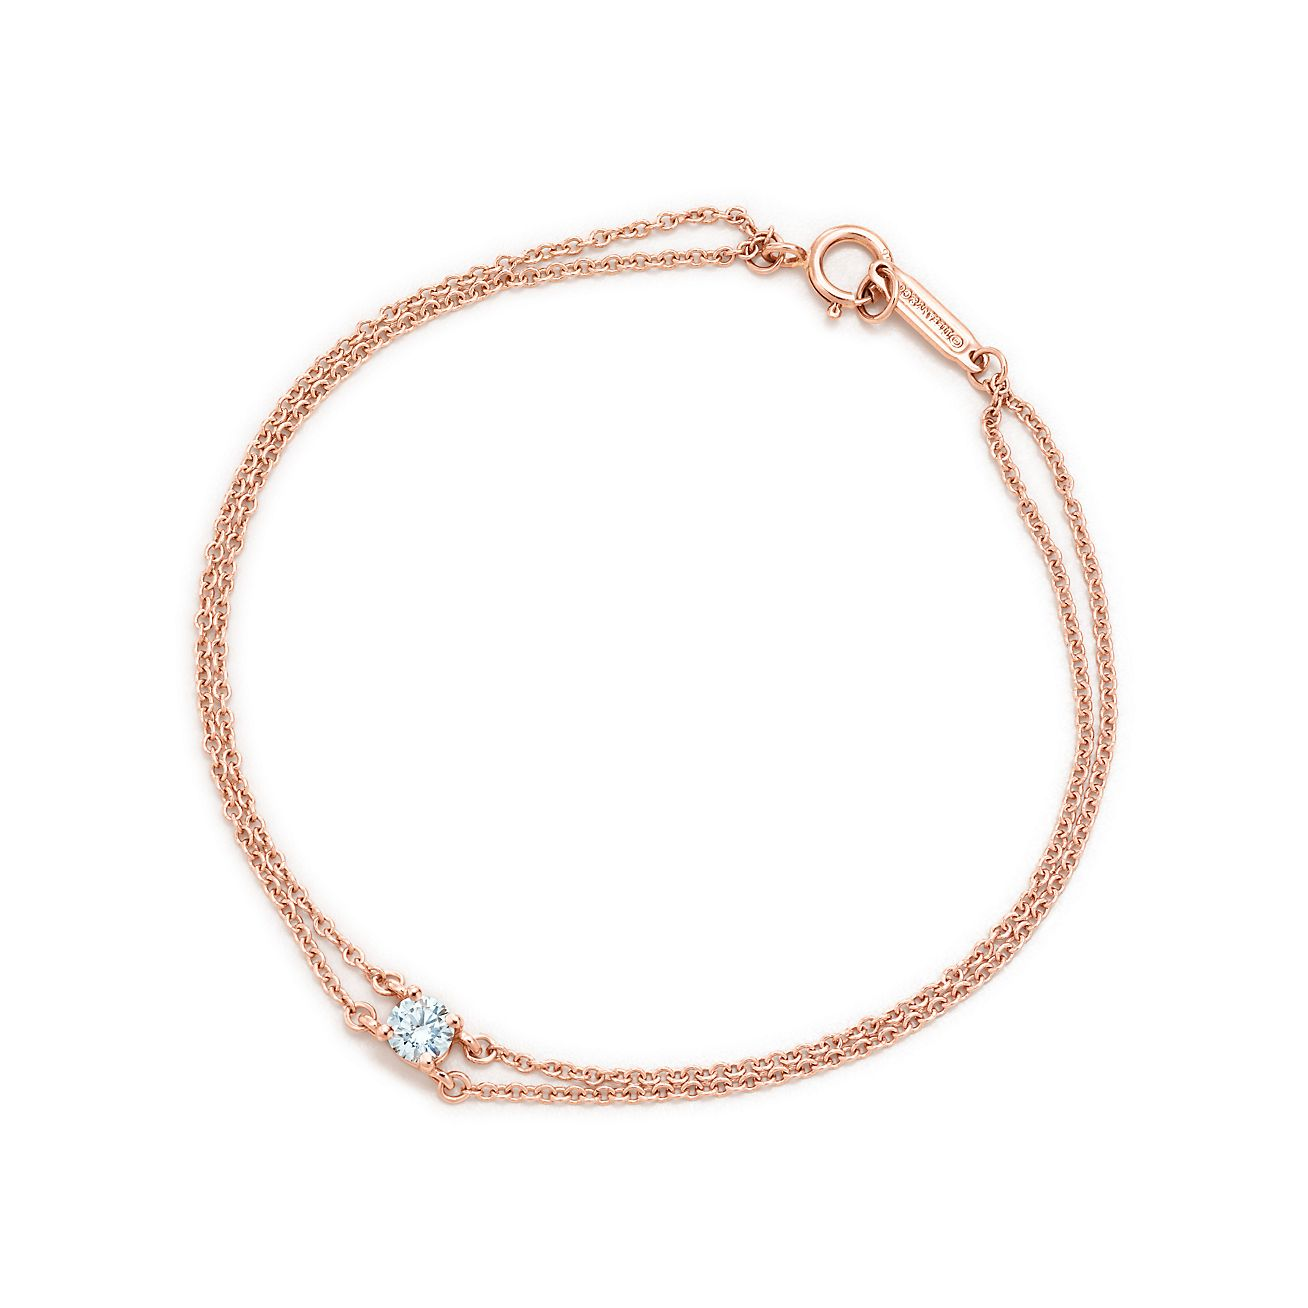 Tiffany solitaire diamond bracelet in 18k rose gold tiffany co tiffany solitaire diamond bracelet aloadofball Images